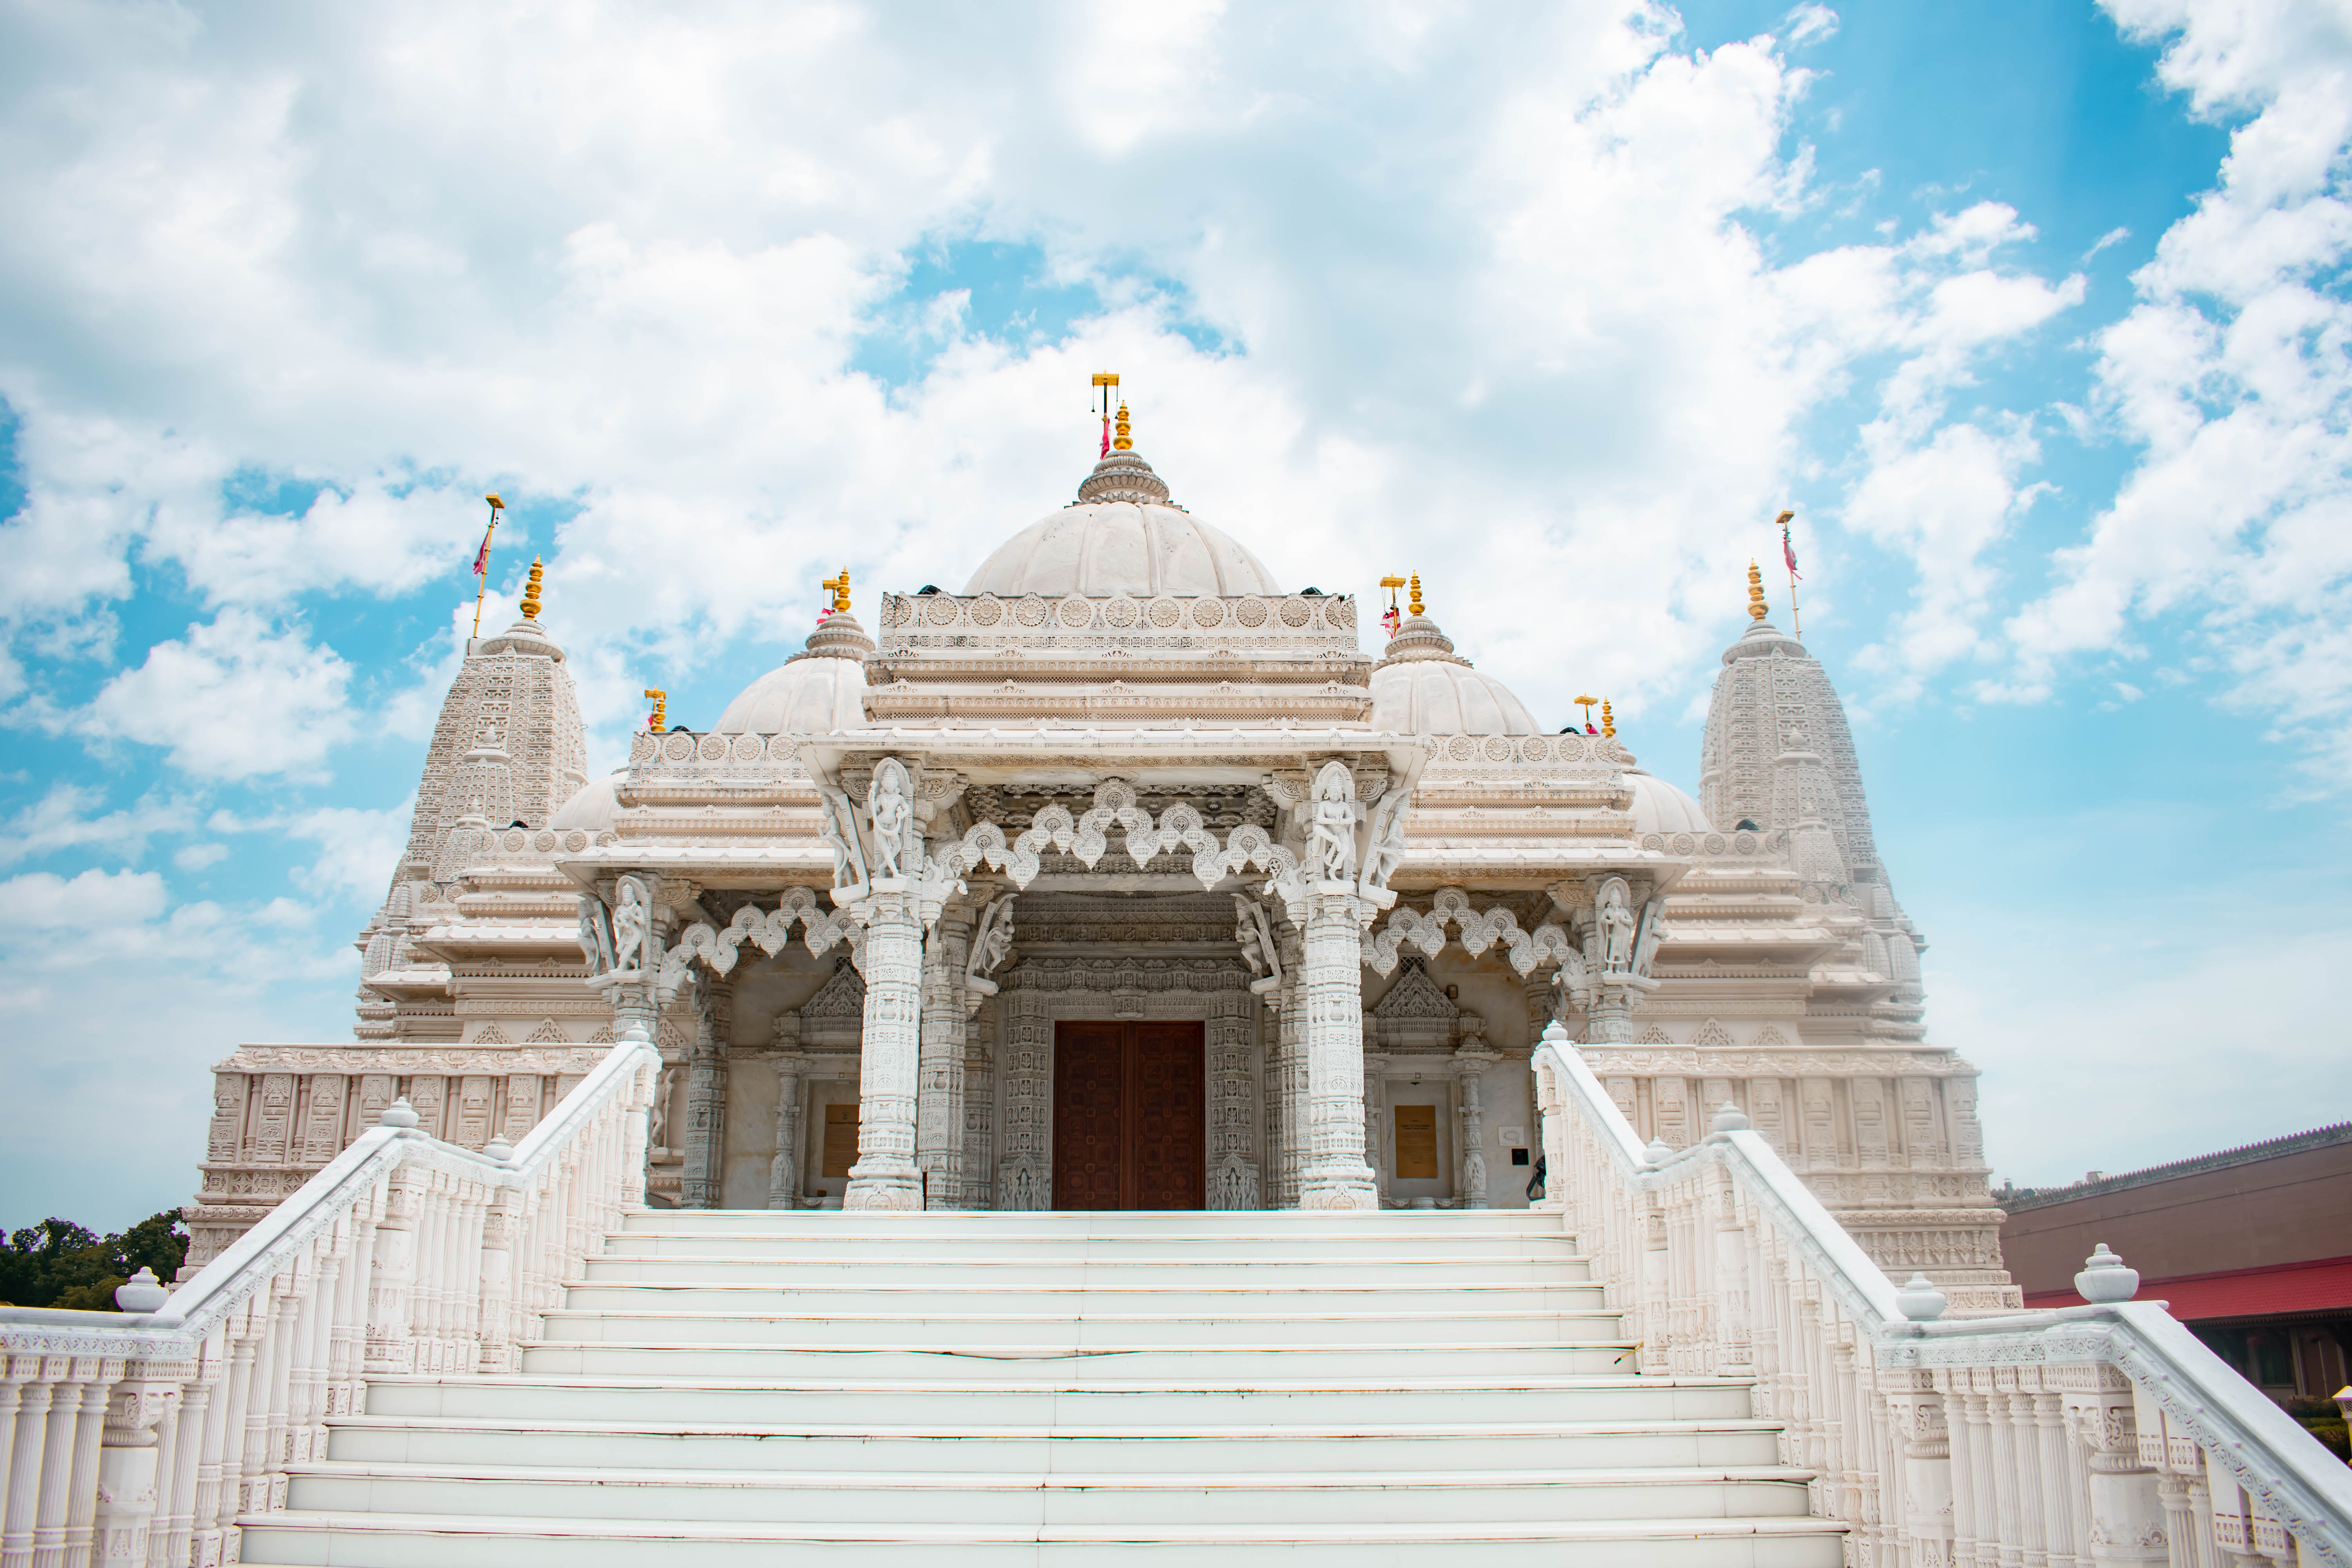 temple entrance baps shri swaminarayan mandir in bartlett chicago illinois hindu temple